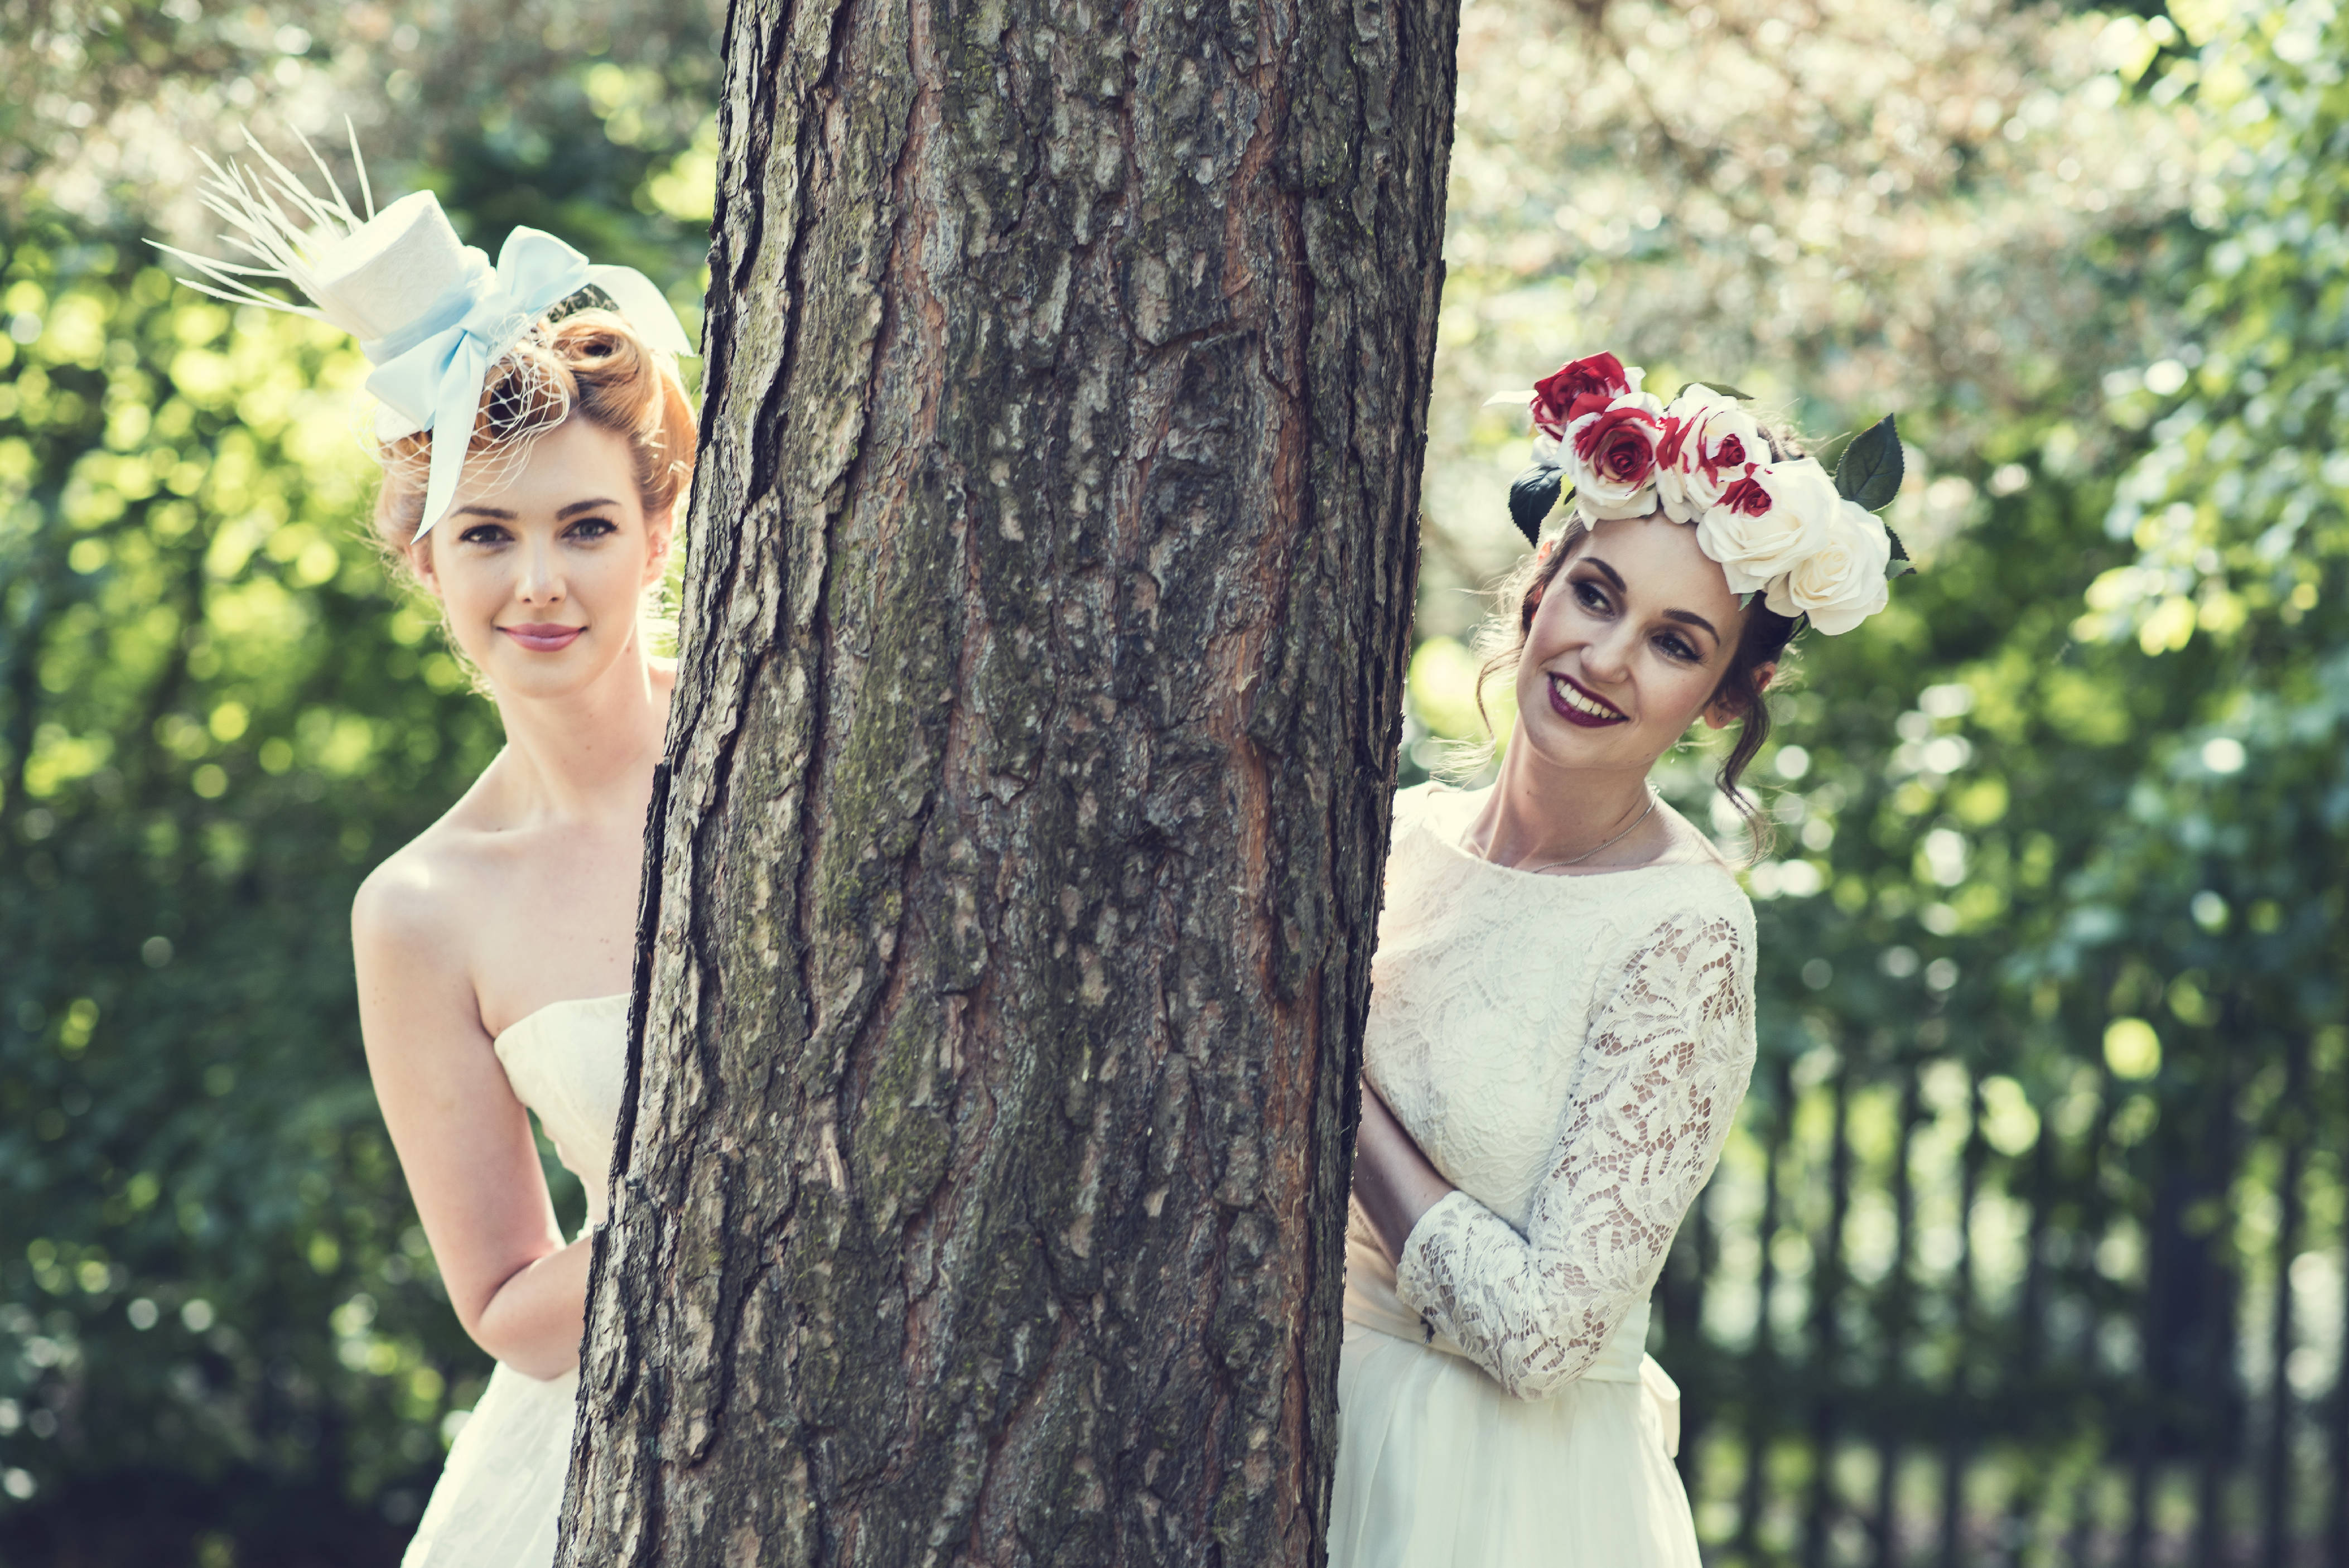 Alice in Wonderland wedding inspiration - in the woods - alternative and unconventional wedding